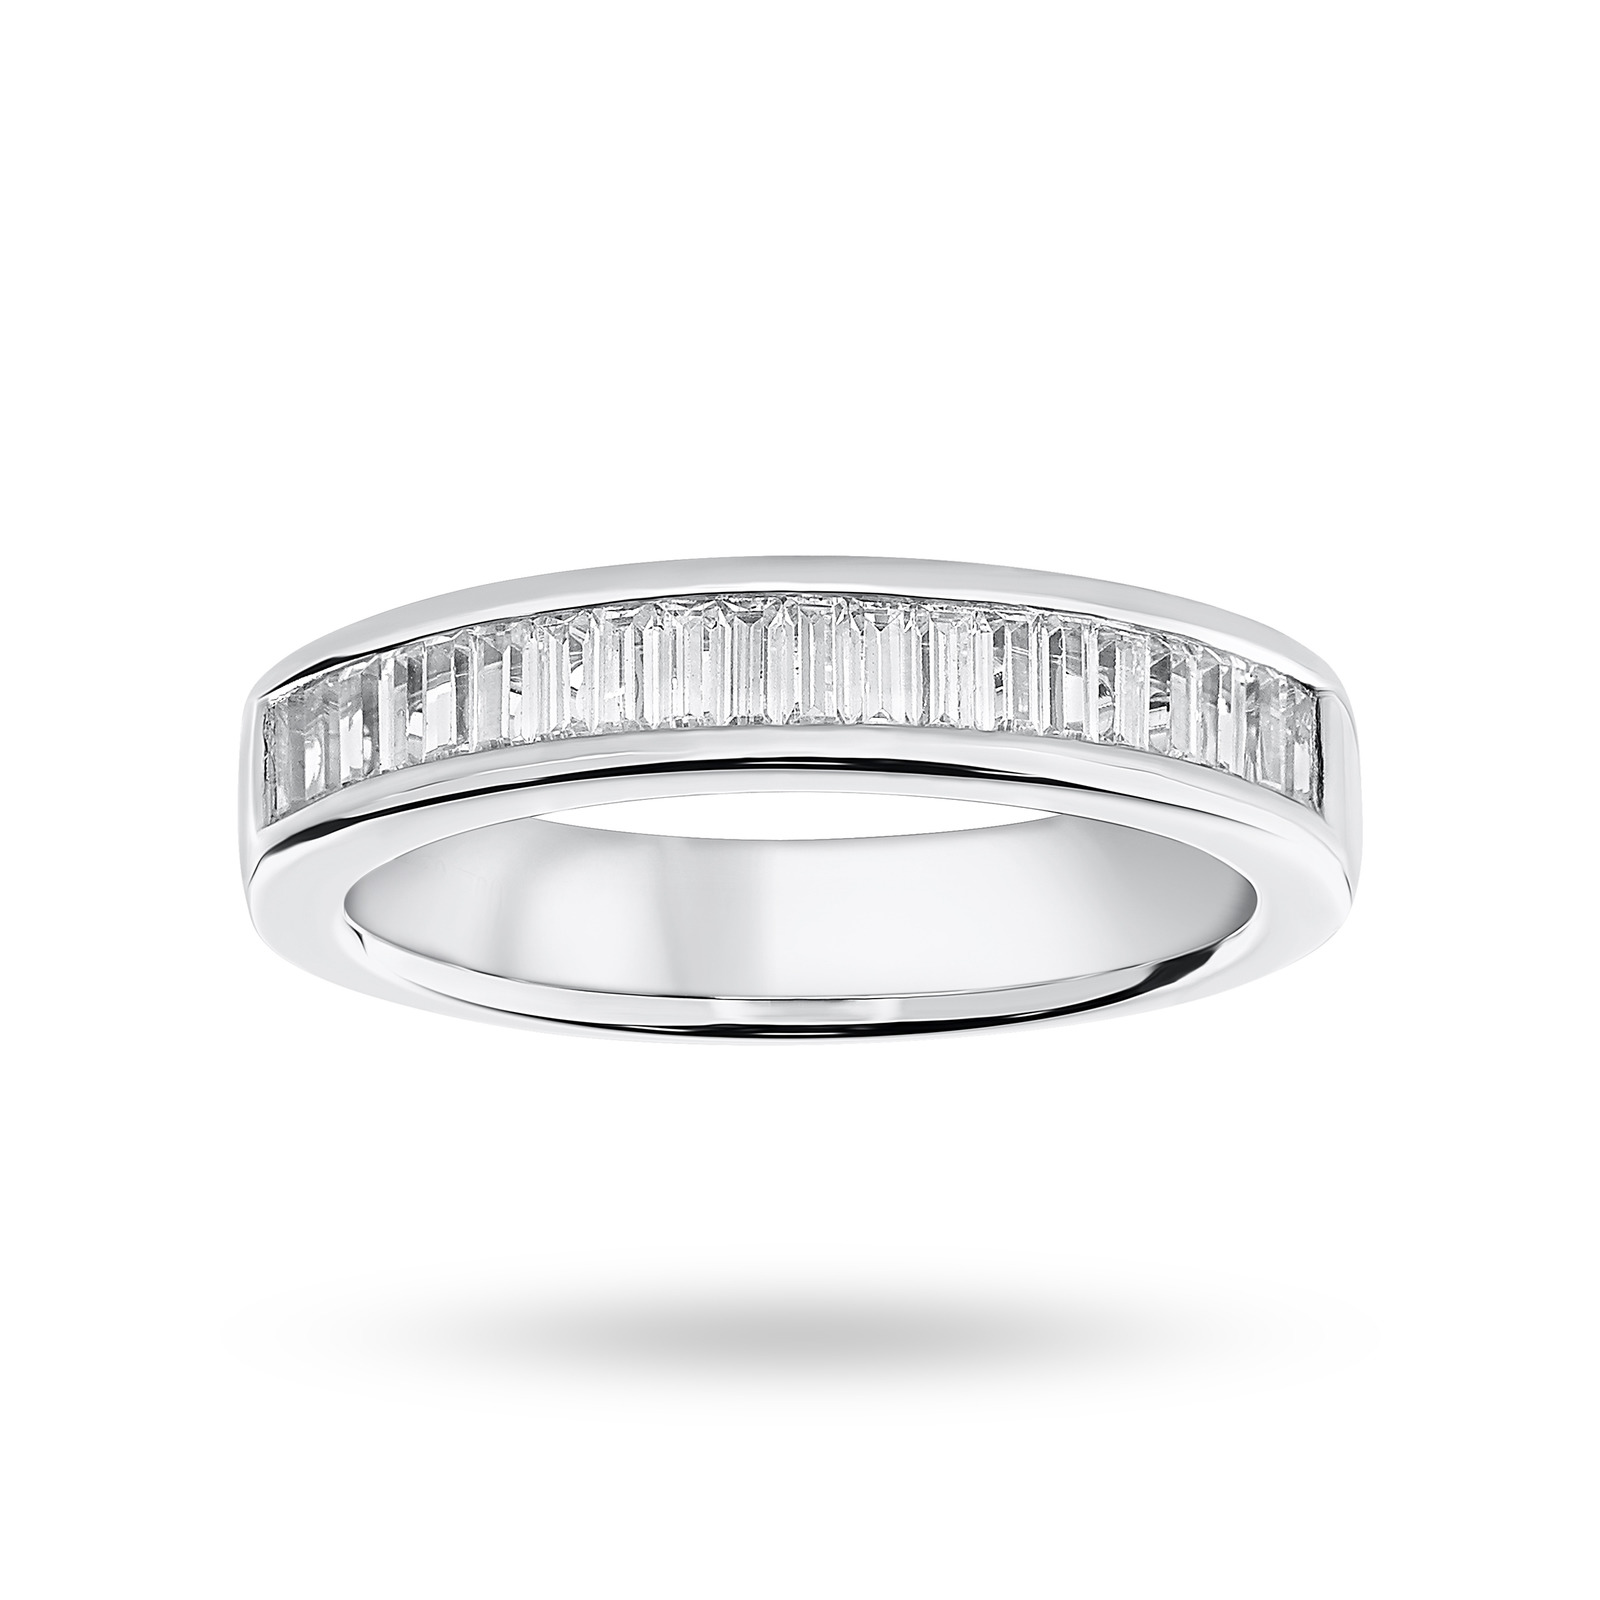 18 Carat White Gold 0.75 Carat Baguette Cut Half Eternity Ring